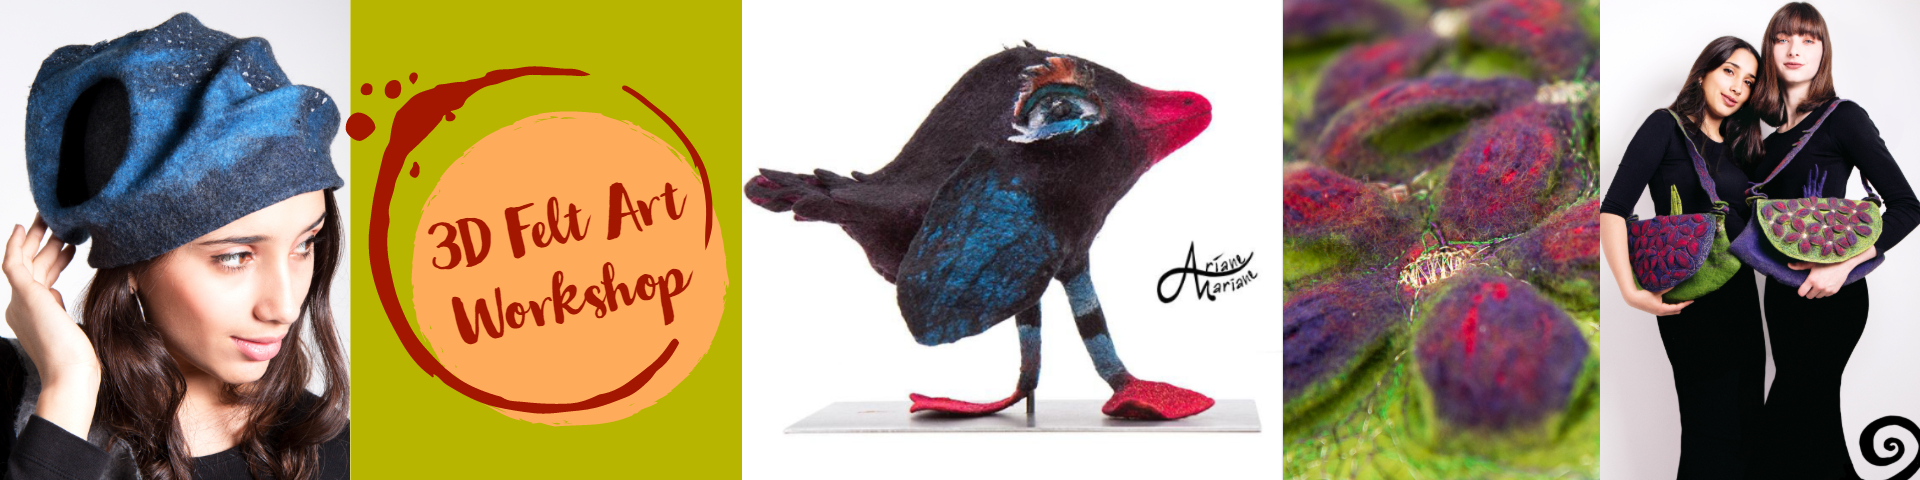 Learn or improuve your felting and creative skills by making a bag, a hat or sculpture in wet and nuno felt techniques. -